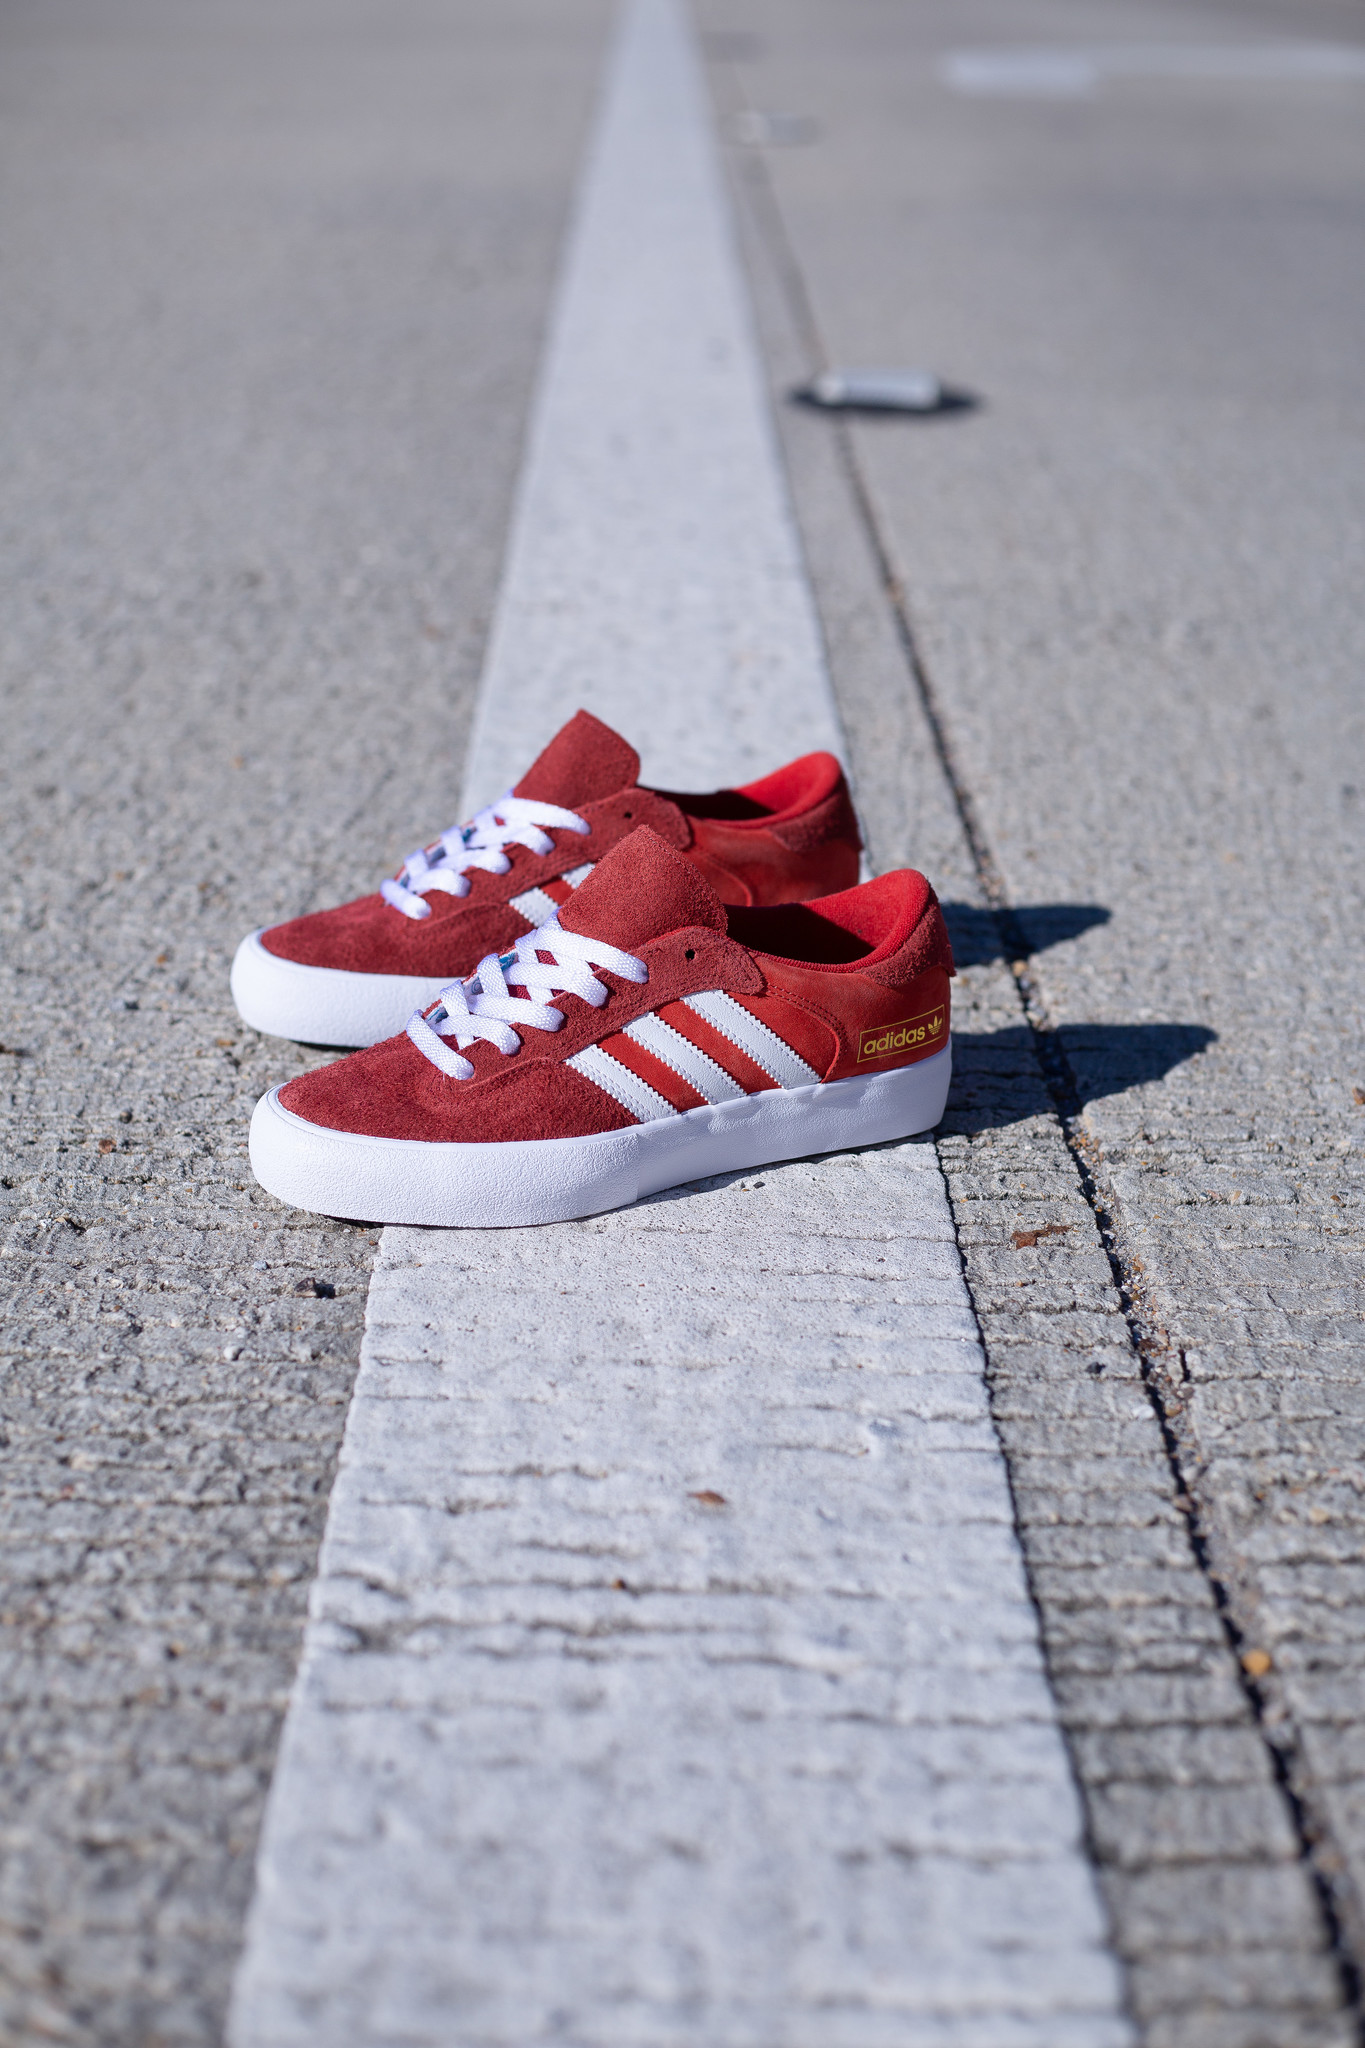 adidas Matchbreak Super Crimson Red